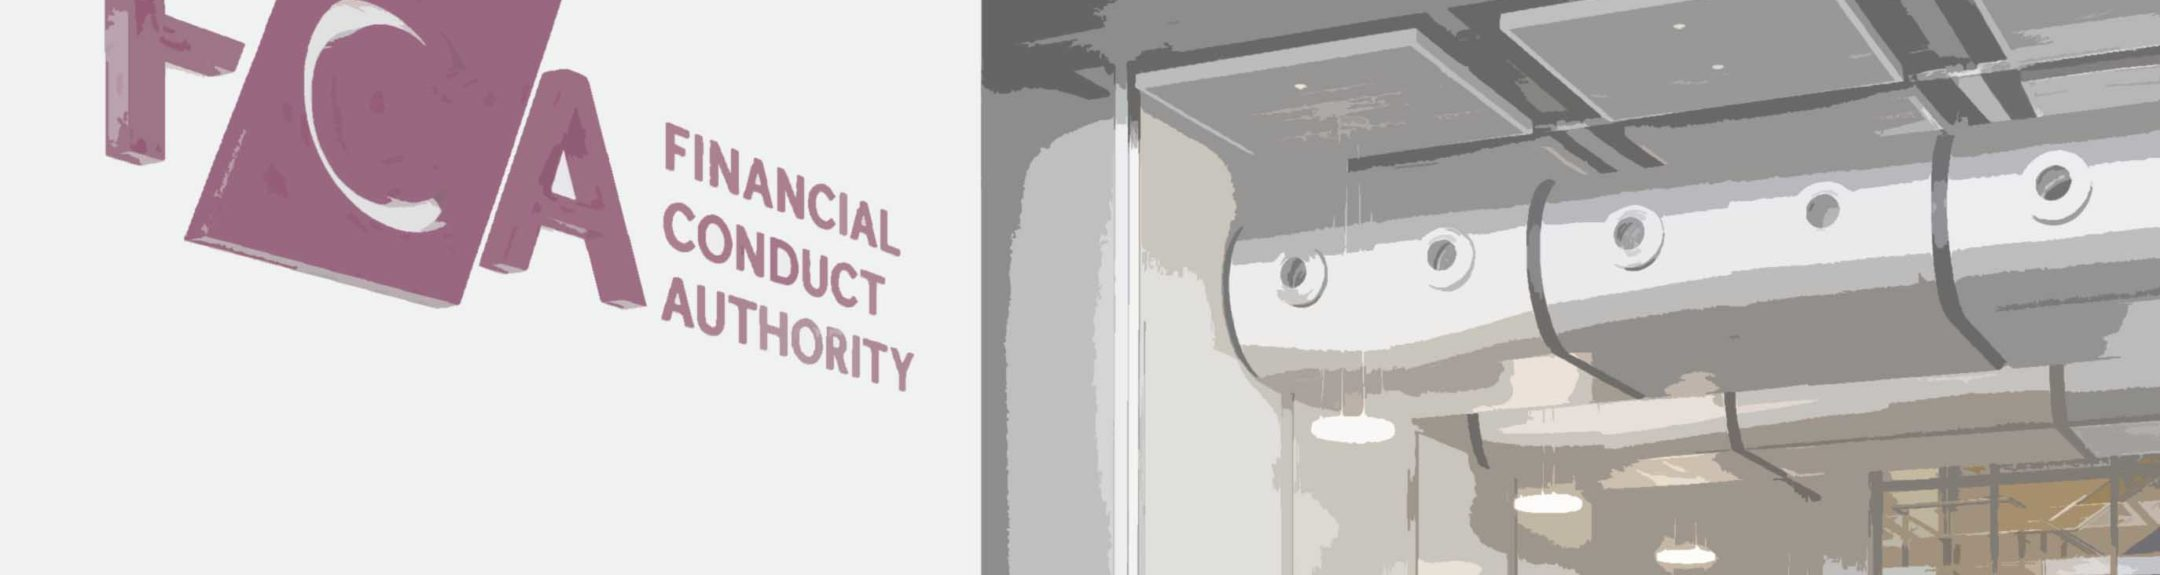 The UK's Financial Conduct Authority (FCA) has launched its third and final consultation regarding the UK Investment Firms Prudential Regime (IFPR), a UK prudential regime for investment funds.